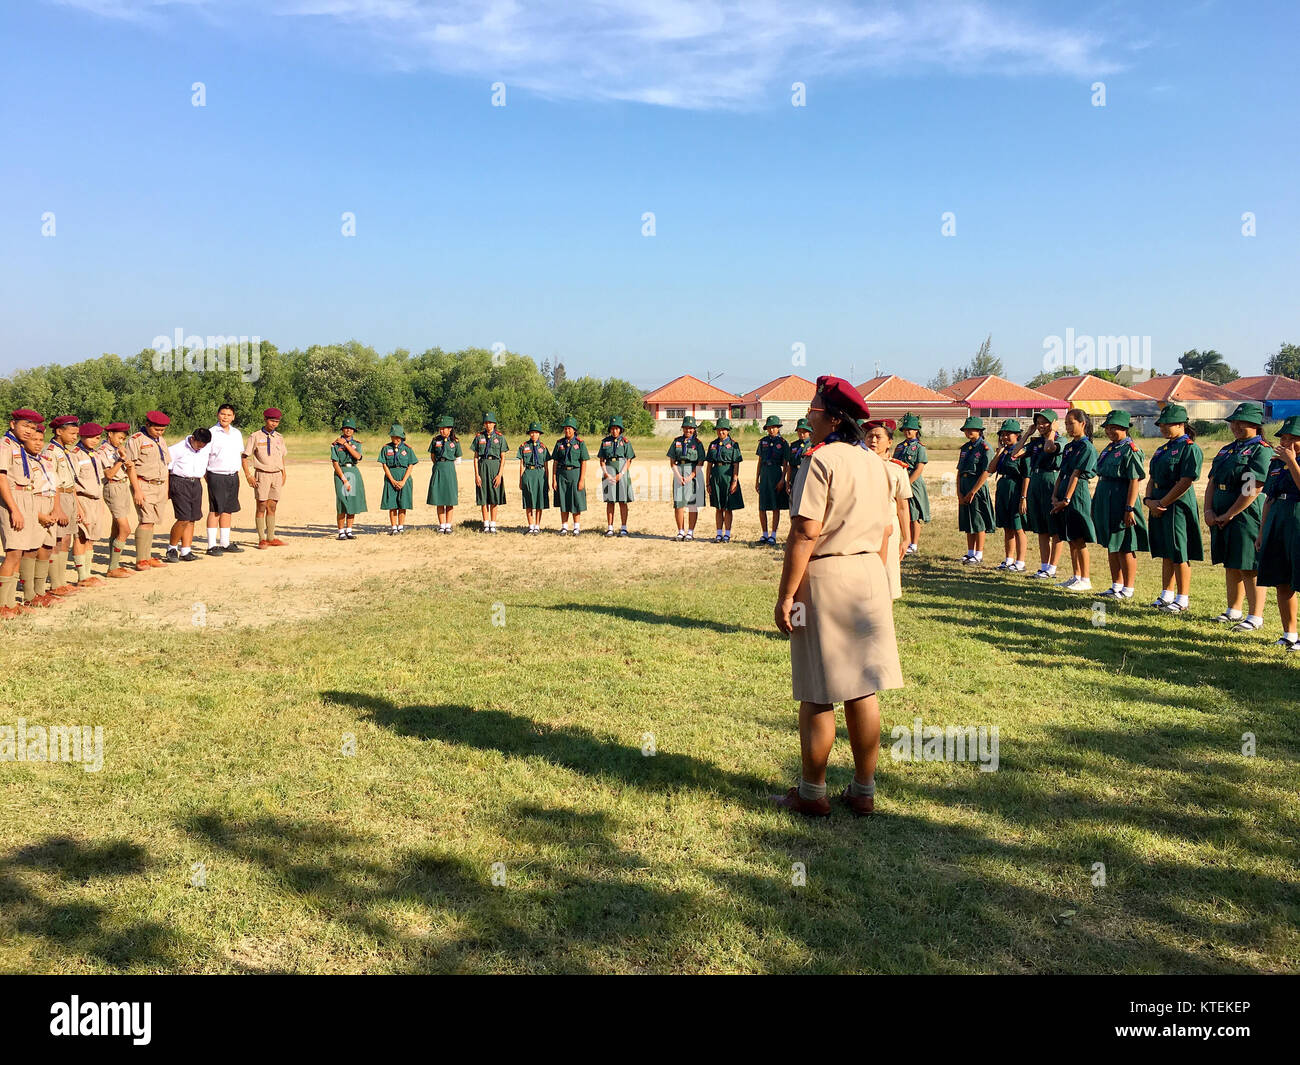 Thai boy scout learn outdoor activities with their teacher out door. December 20, 2017 Hua Hin Thailand - Stock Image